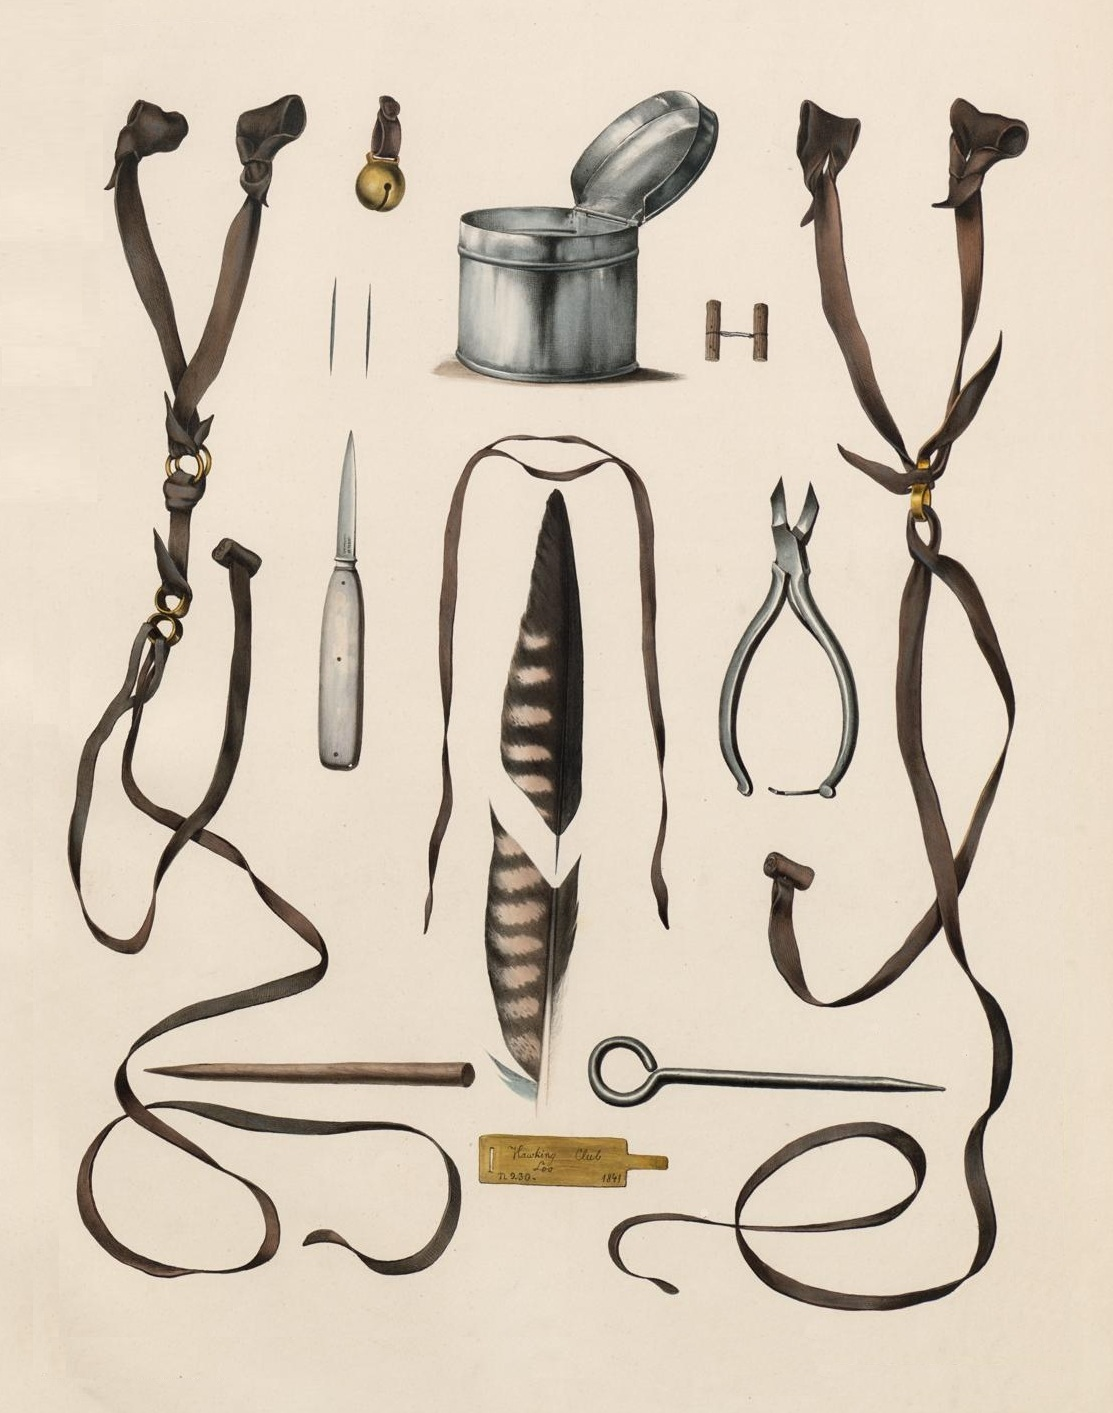 book illustration of training equipment used in falconry